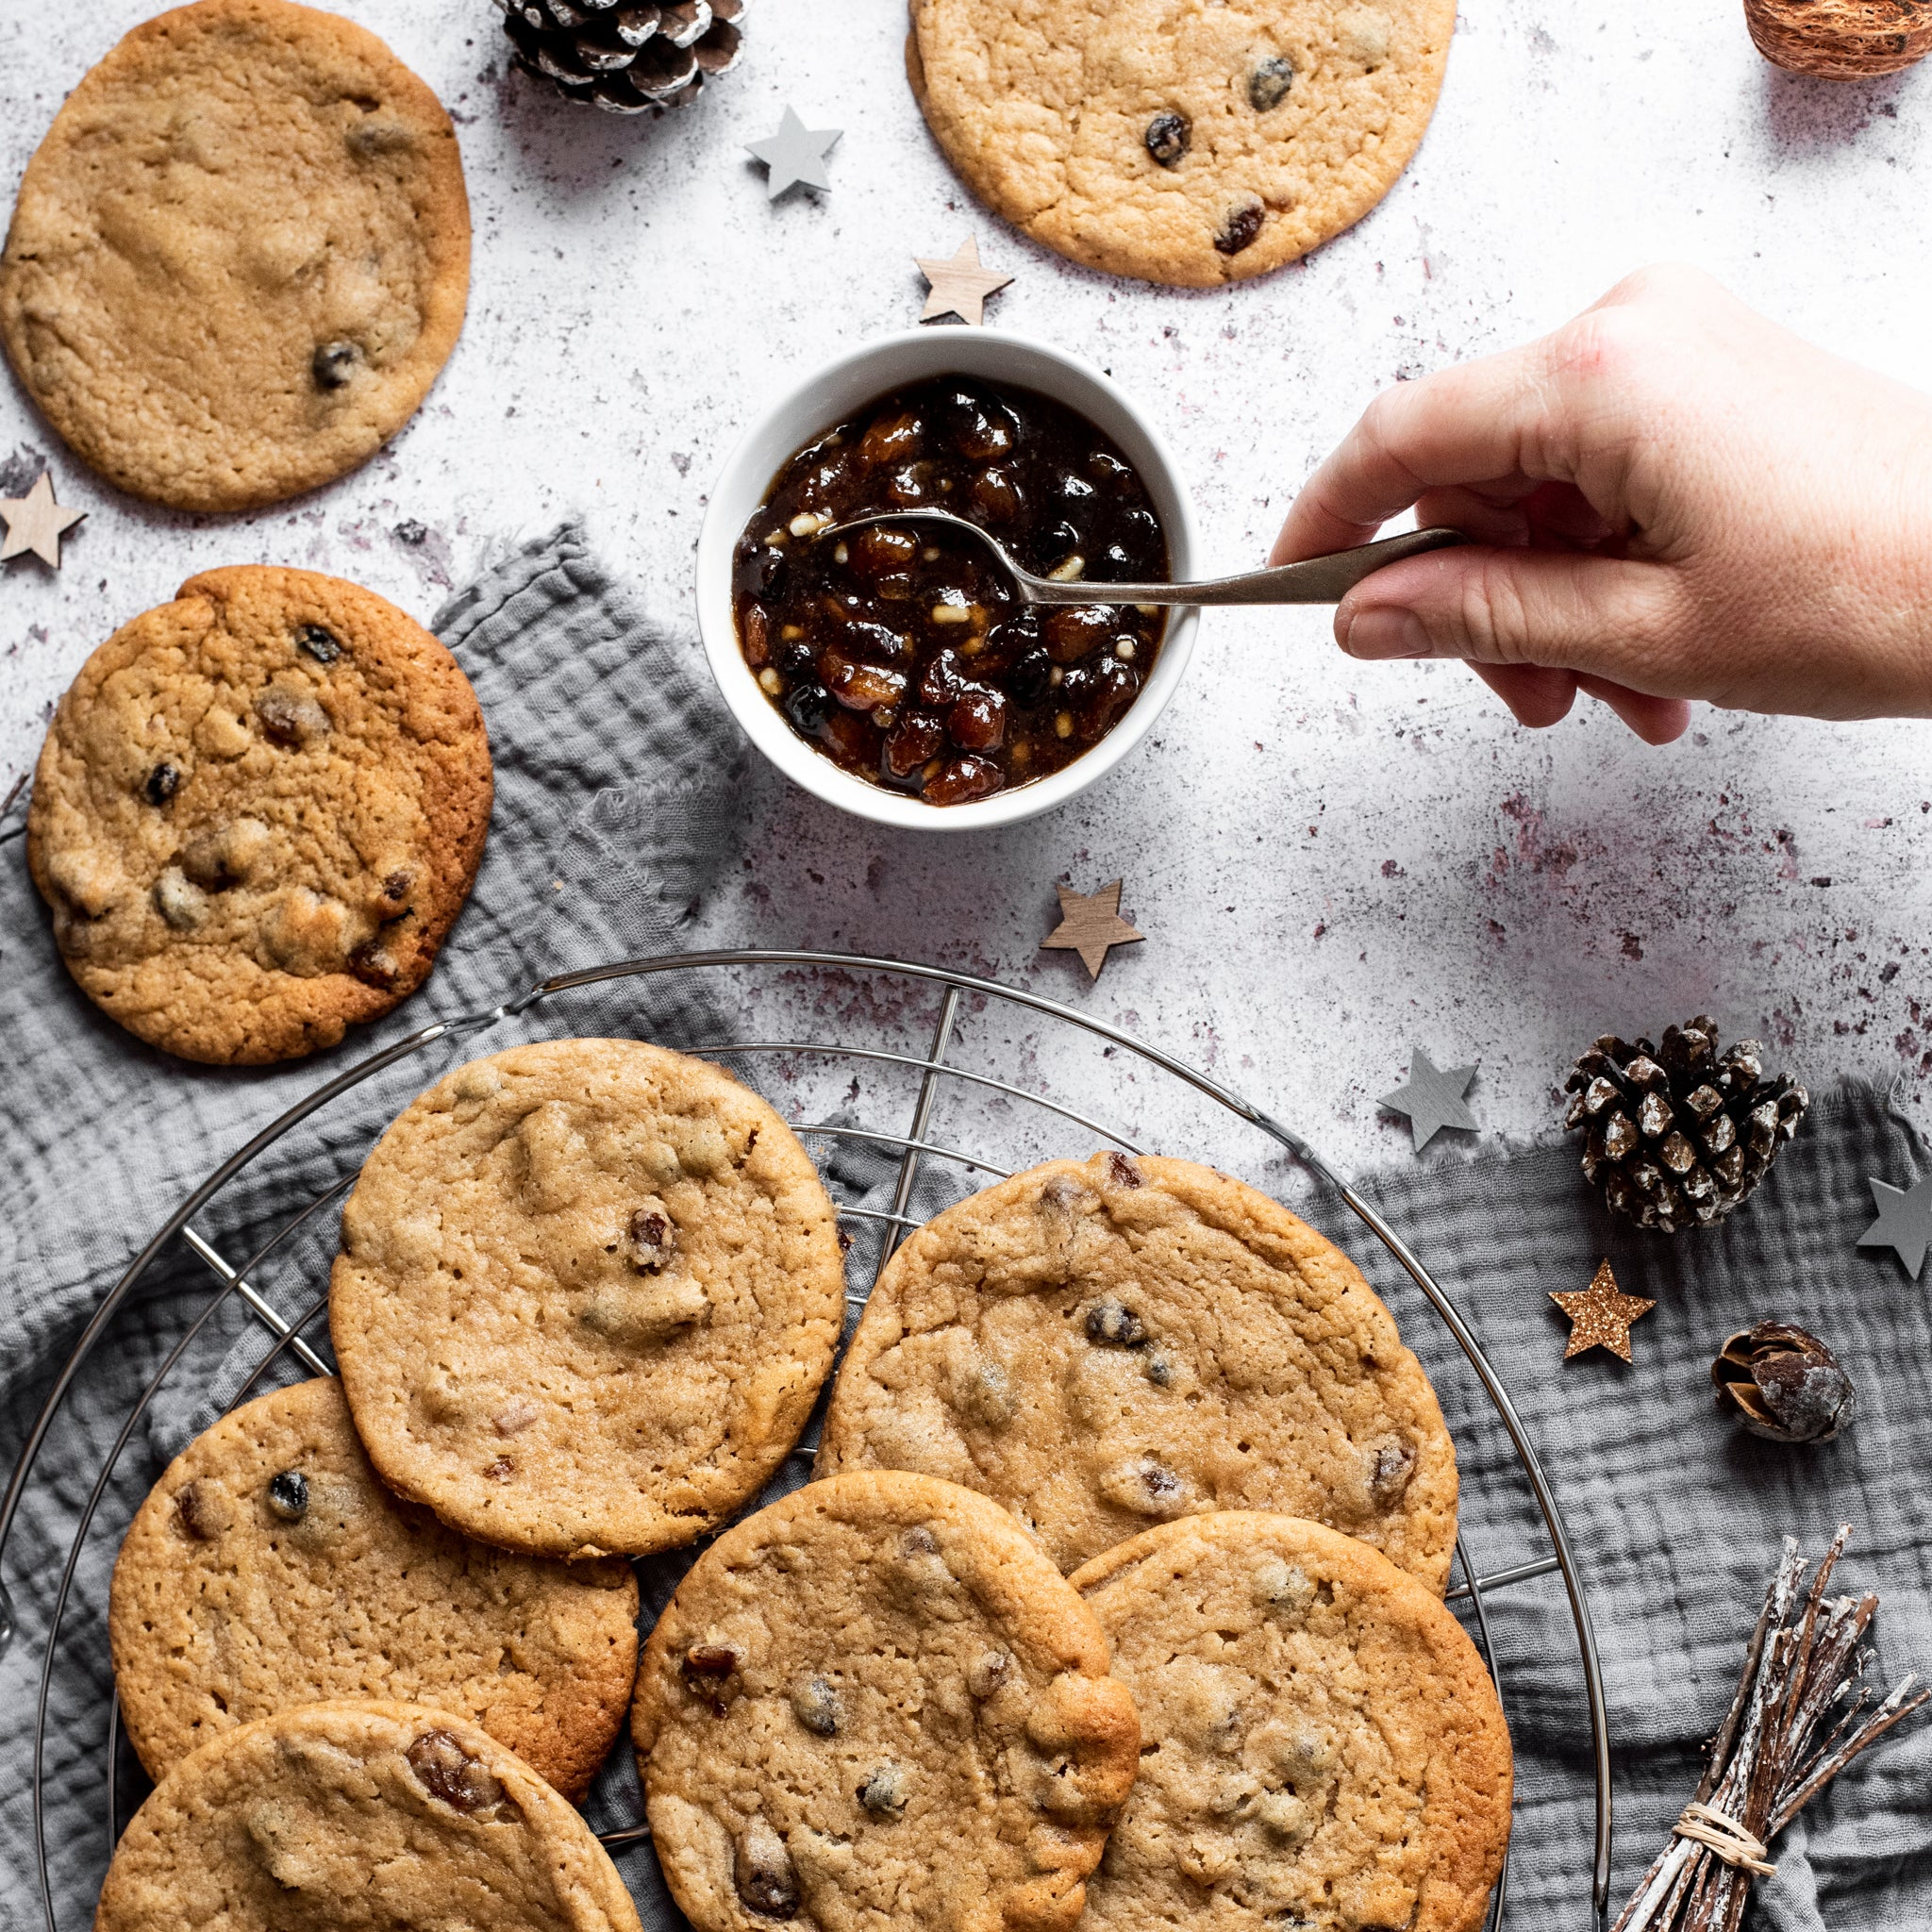 Mince pie cookies on a circular cooling rack, a hand spooning mincemeat out of a small bowl